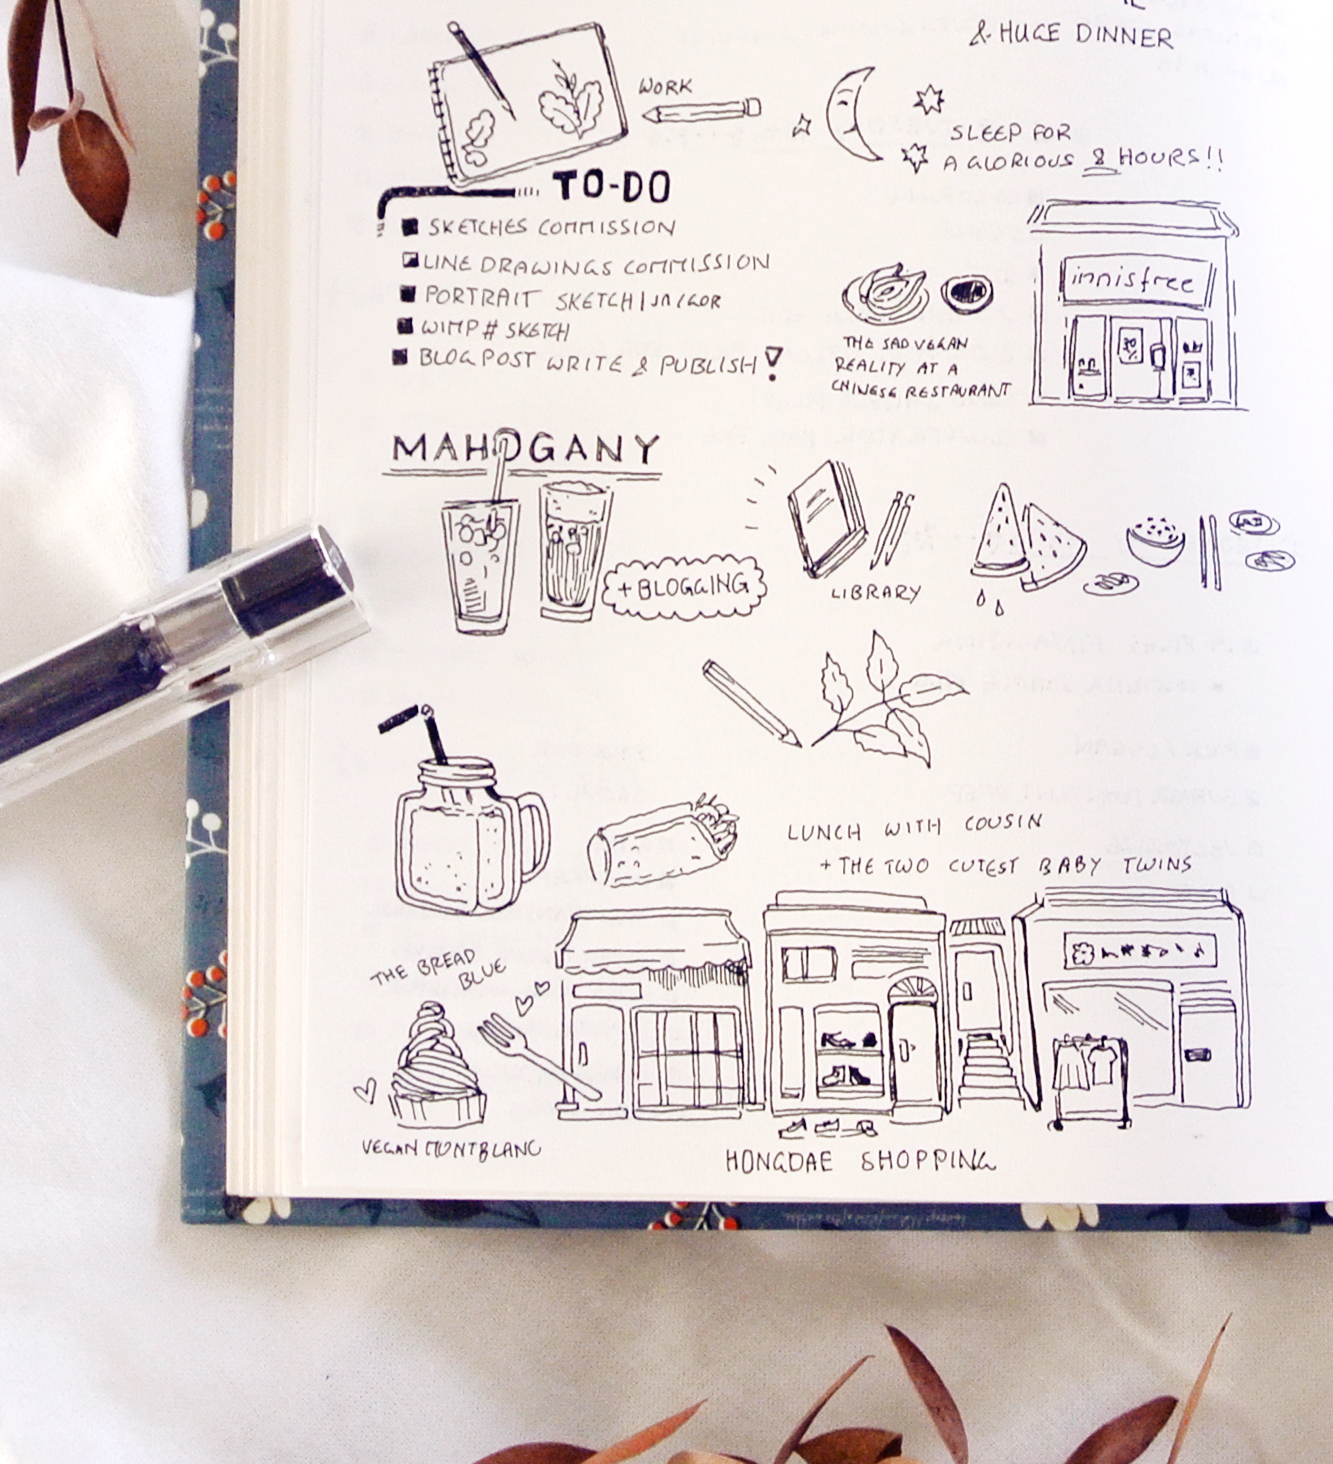 My travel diary sketches for this day in Seoul and Incheon. The Bread Blue was my personal highlight haha...